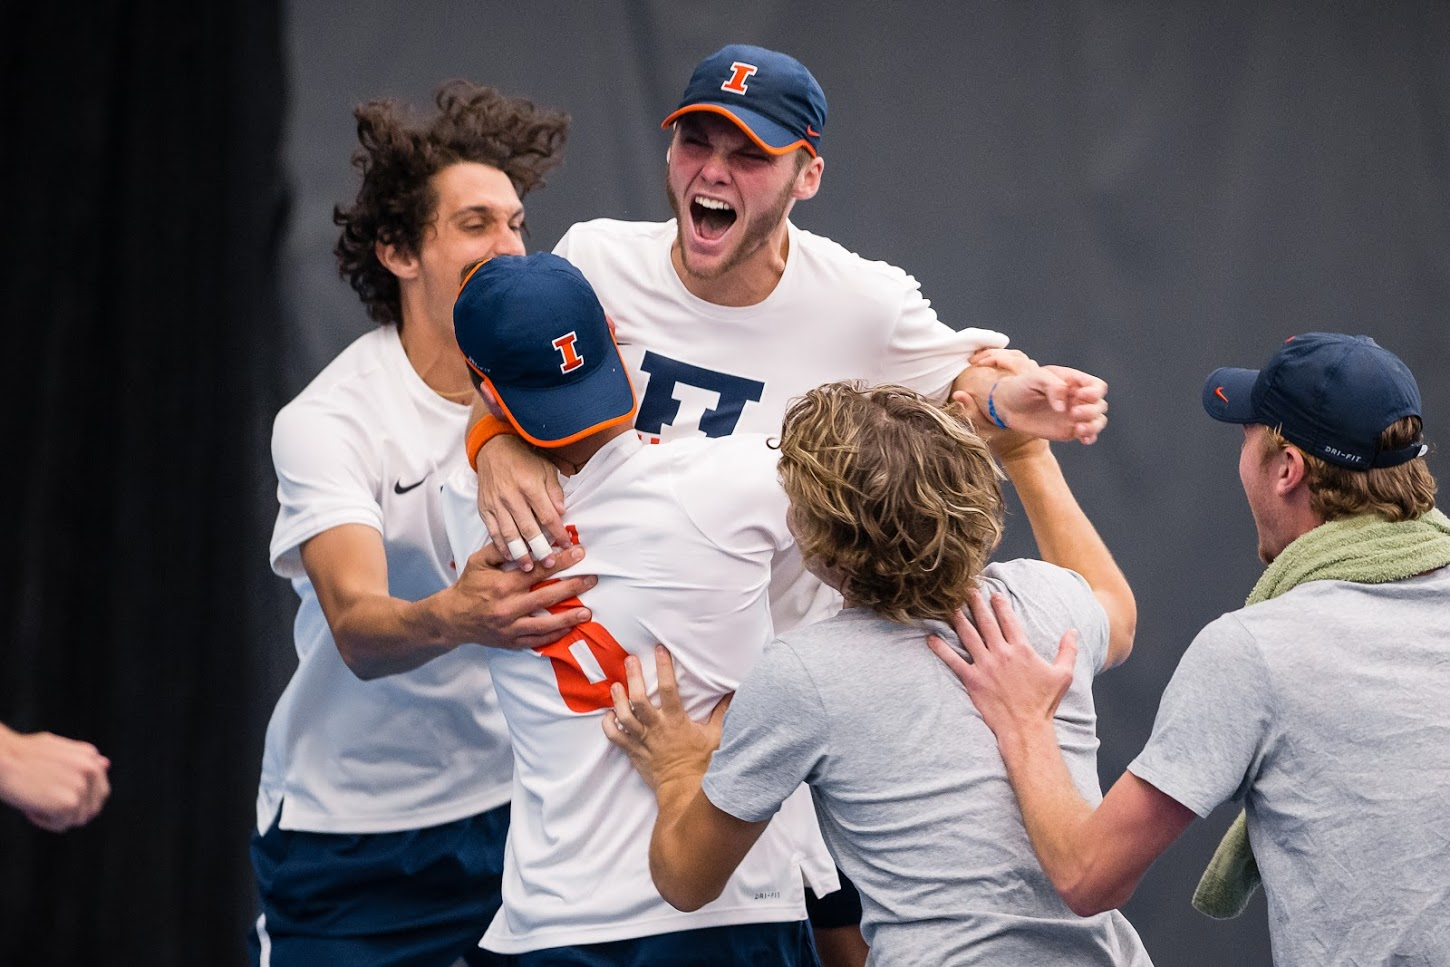 Illinois' Zeke Clark celebrates with his team after winning his singles match to end of the match against Penn State at Atkins Tennis Center on Friday, April 12. The Illini won 4-3.